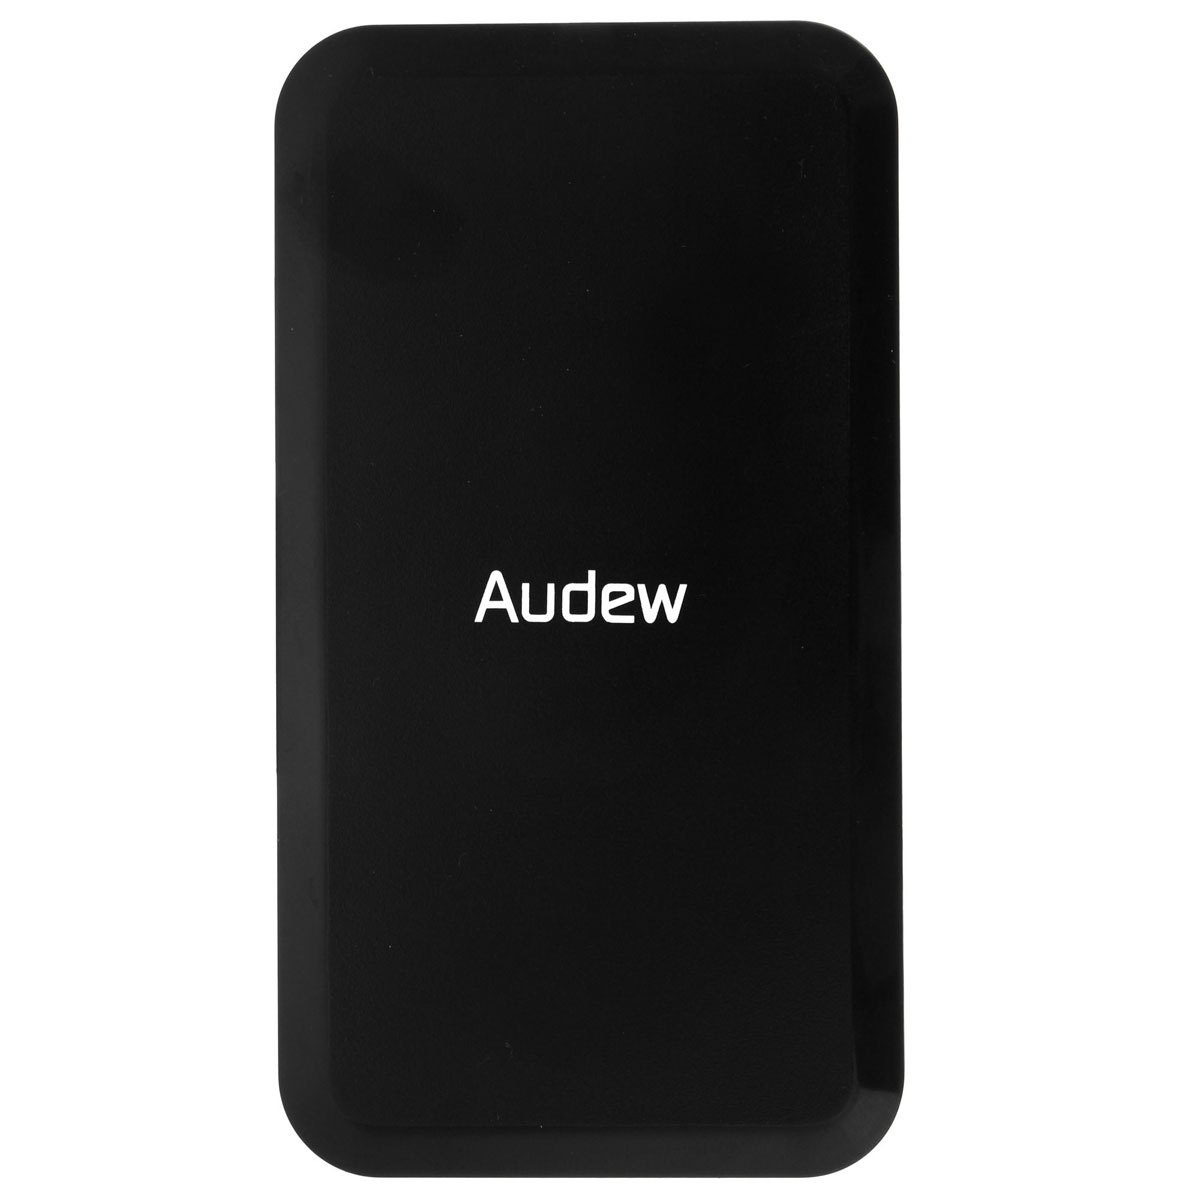 audew qi wireless usb charger charging pad for samsung. Black Bedroom Furniture Sets. Home Design Ideas